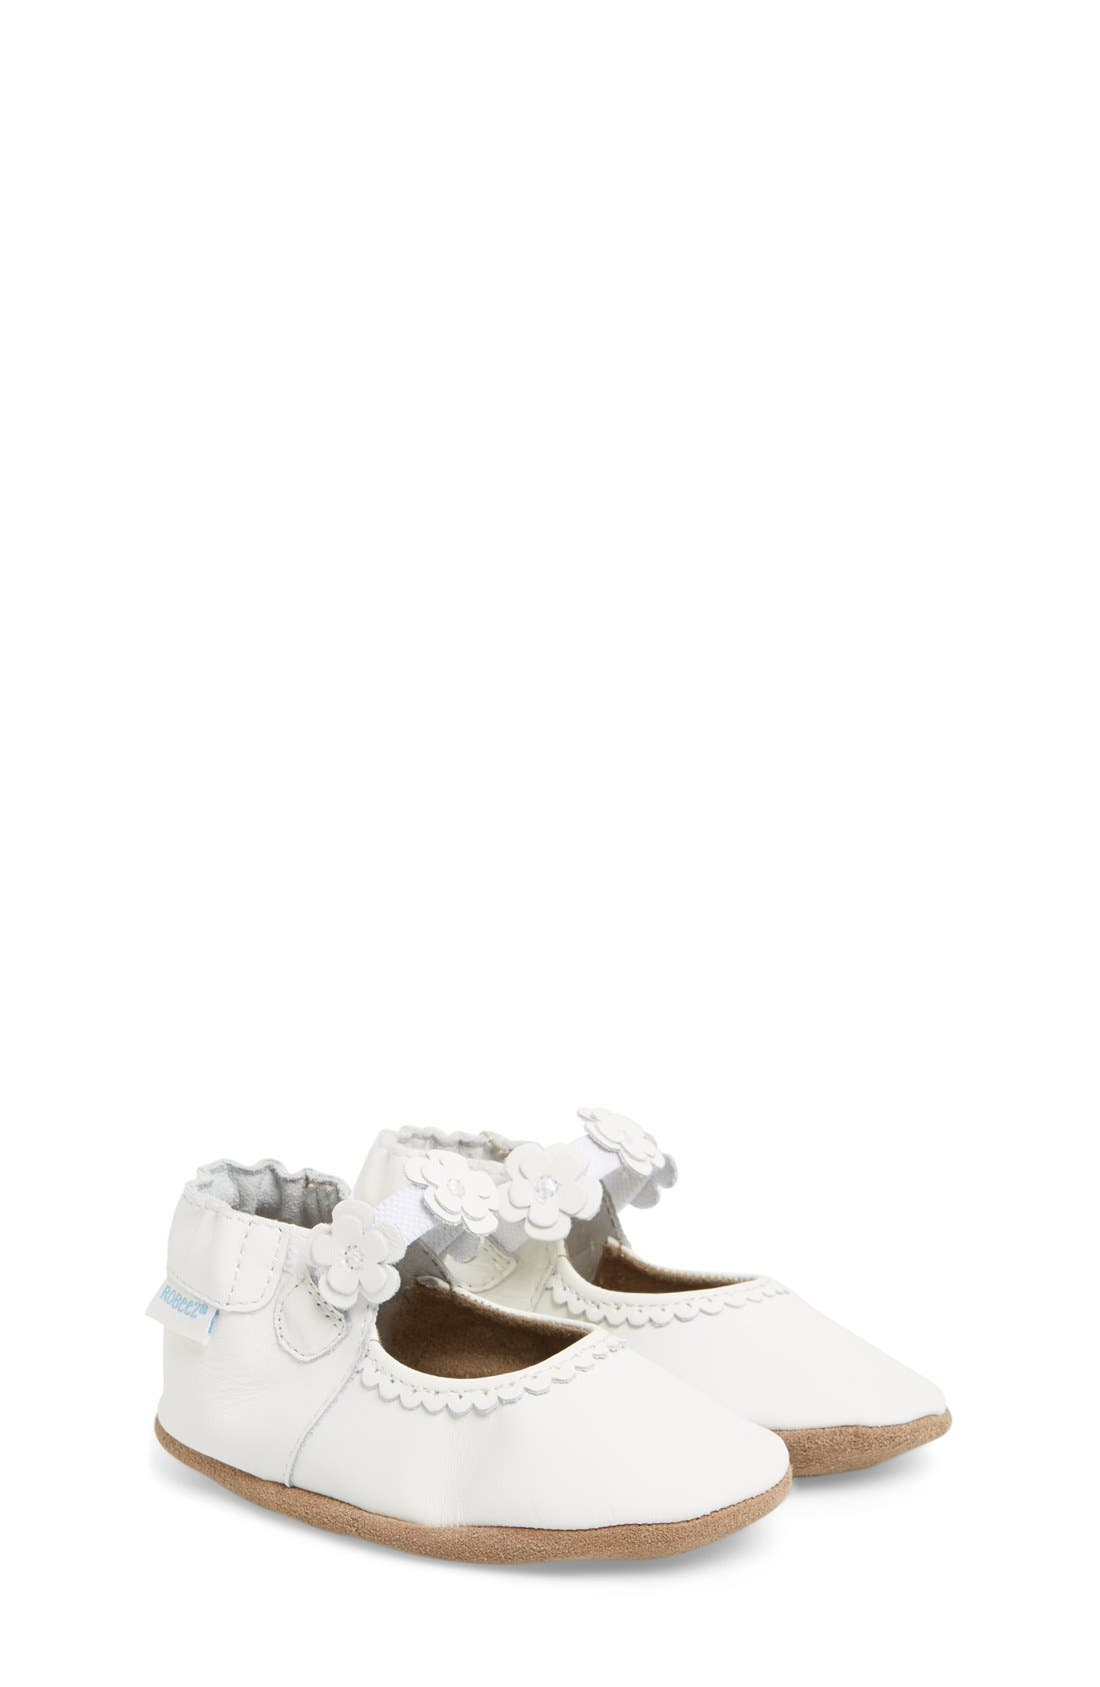 Alternate Image 1 Selected - Robeez® 'Claire' Mary Jane Crib Shoe (Baby & Walker)